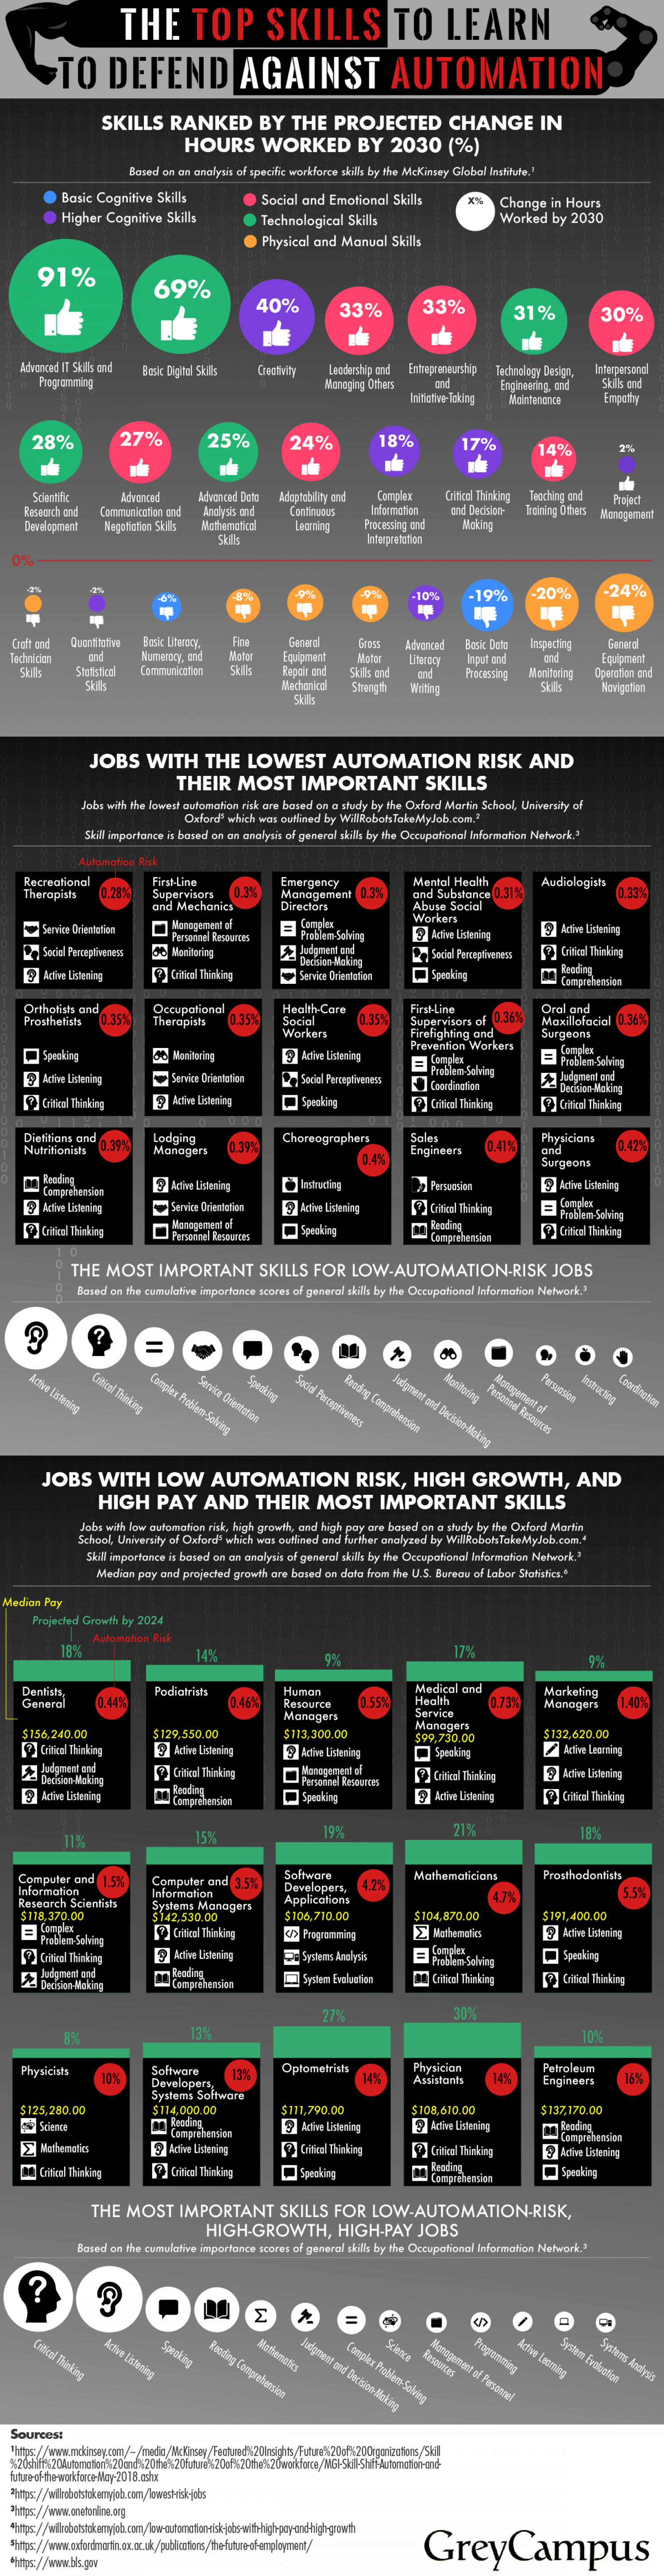 The Top Skills to Learn to Defend Against Automation Infographic